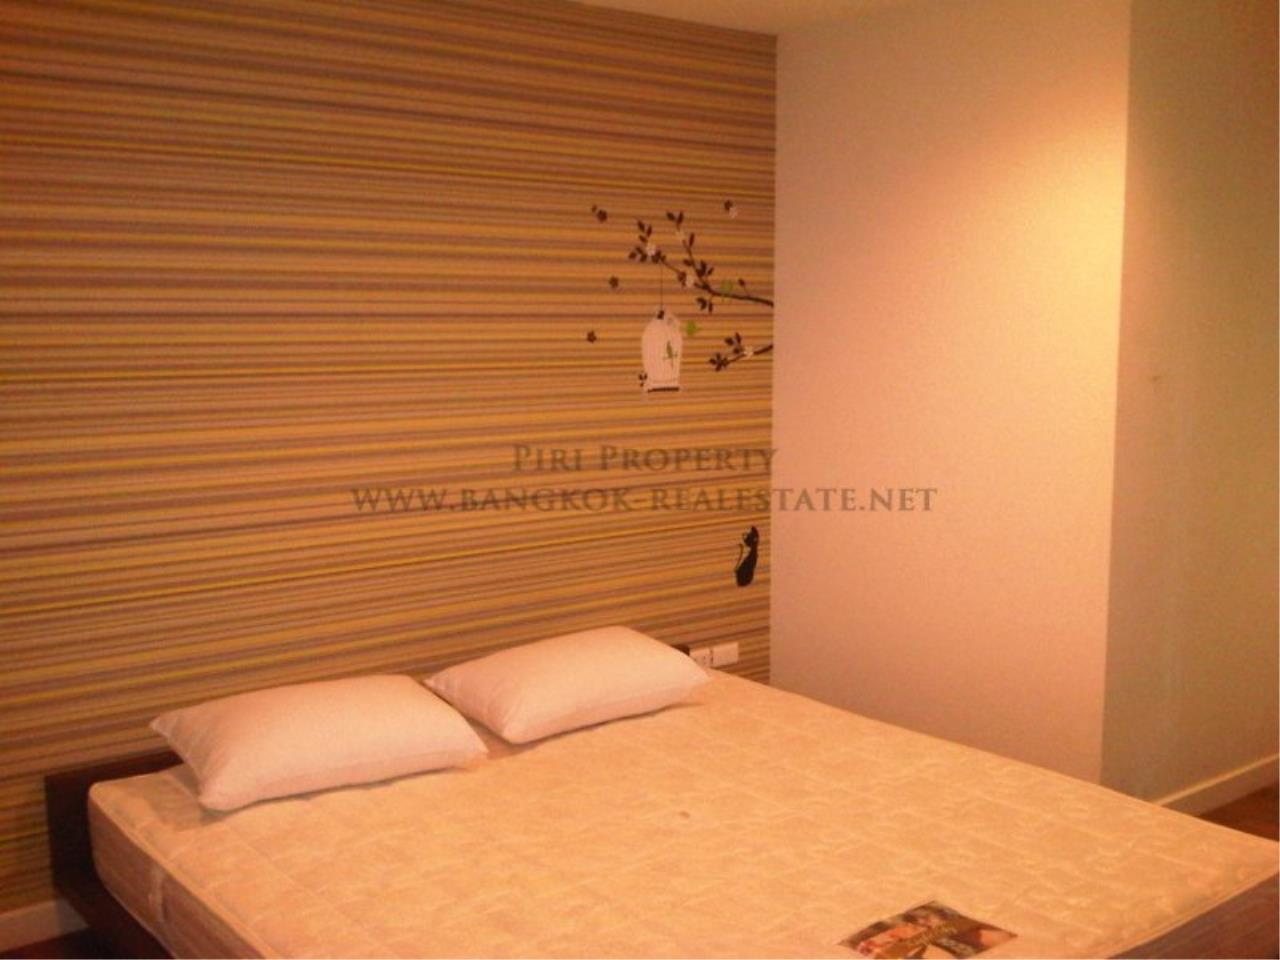 Piri Property Agency's Two Bedroom Condo in Onnut - Very close to the BTS - The Room 79 5